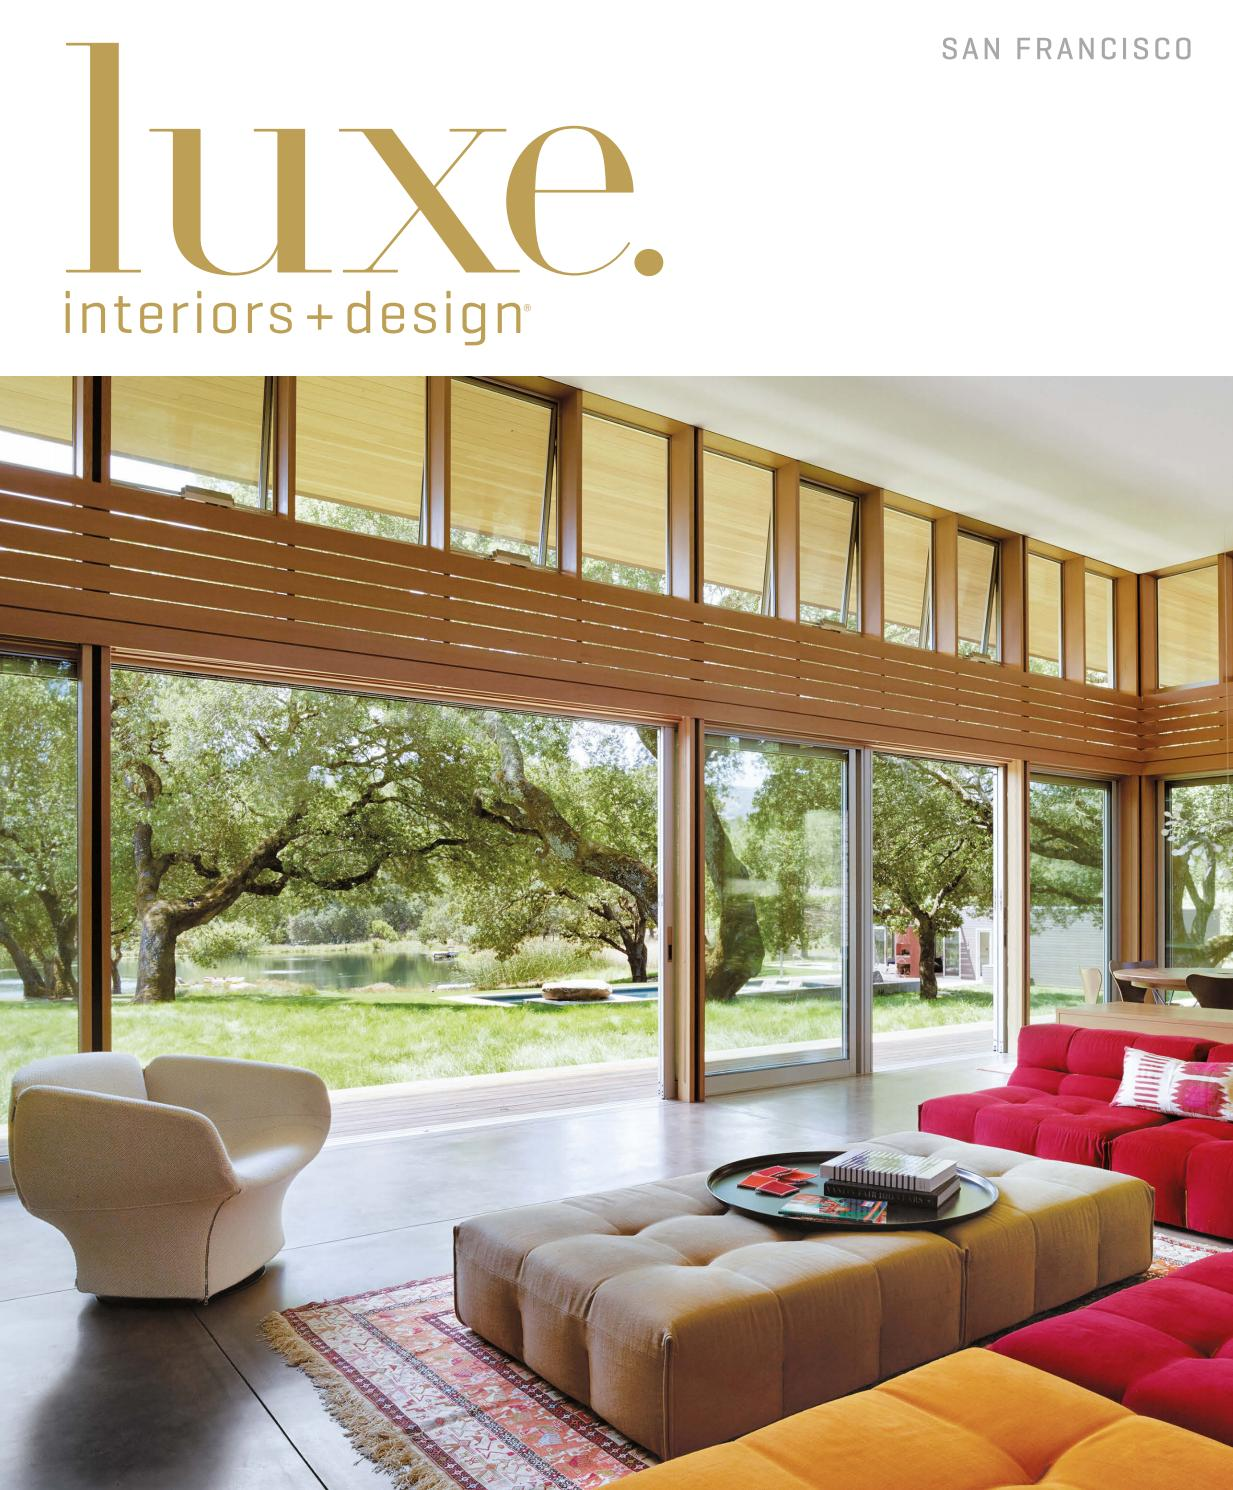 Luxe magazine july 2016 san francisco by sandow issuu Design companies in san francisco